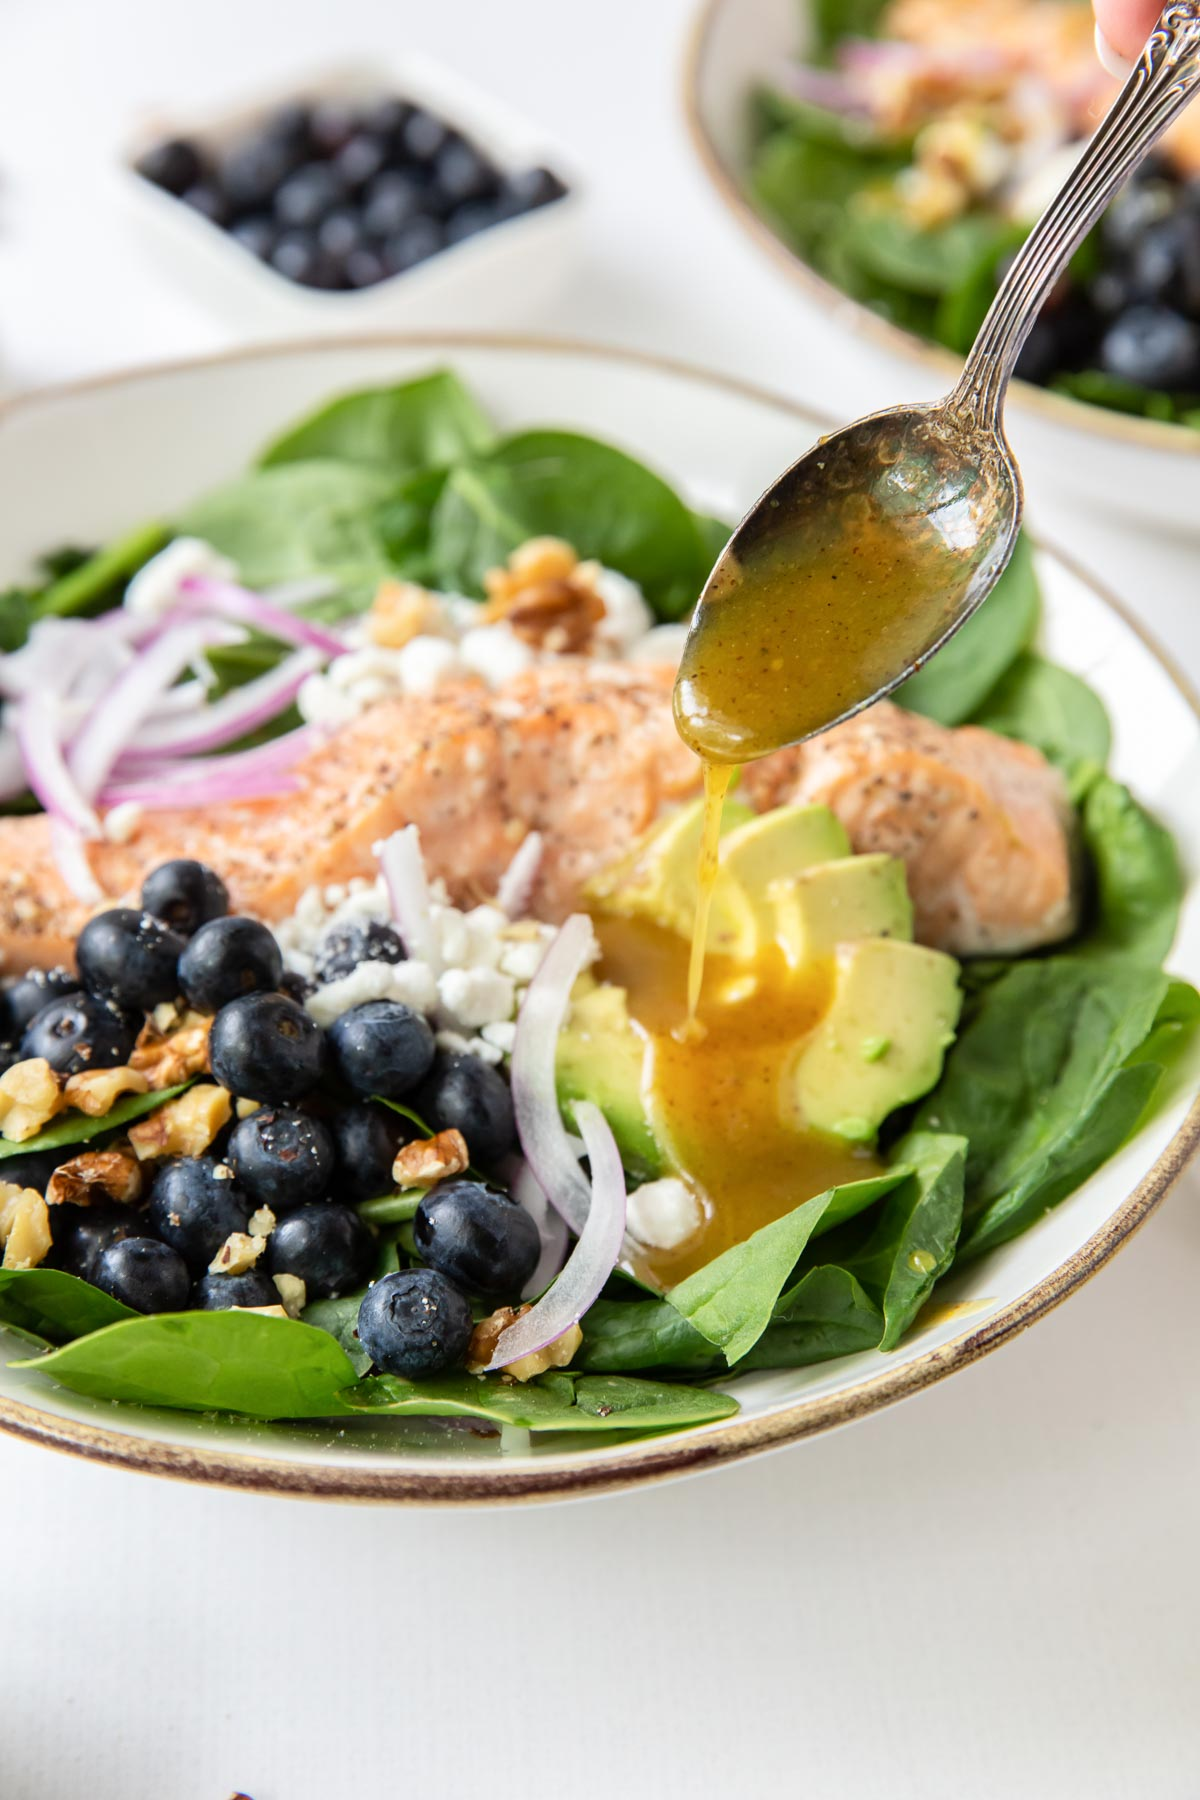 drizzling honey mustard dressing onto a spinach salad with avocado and salmon.